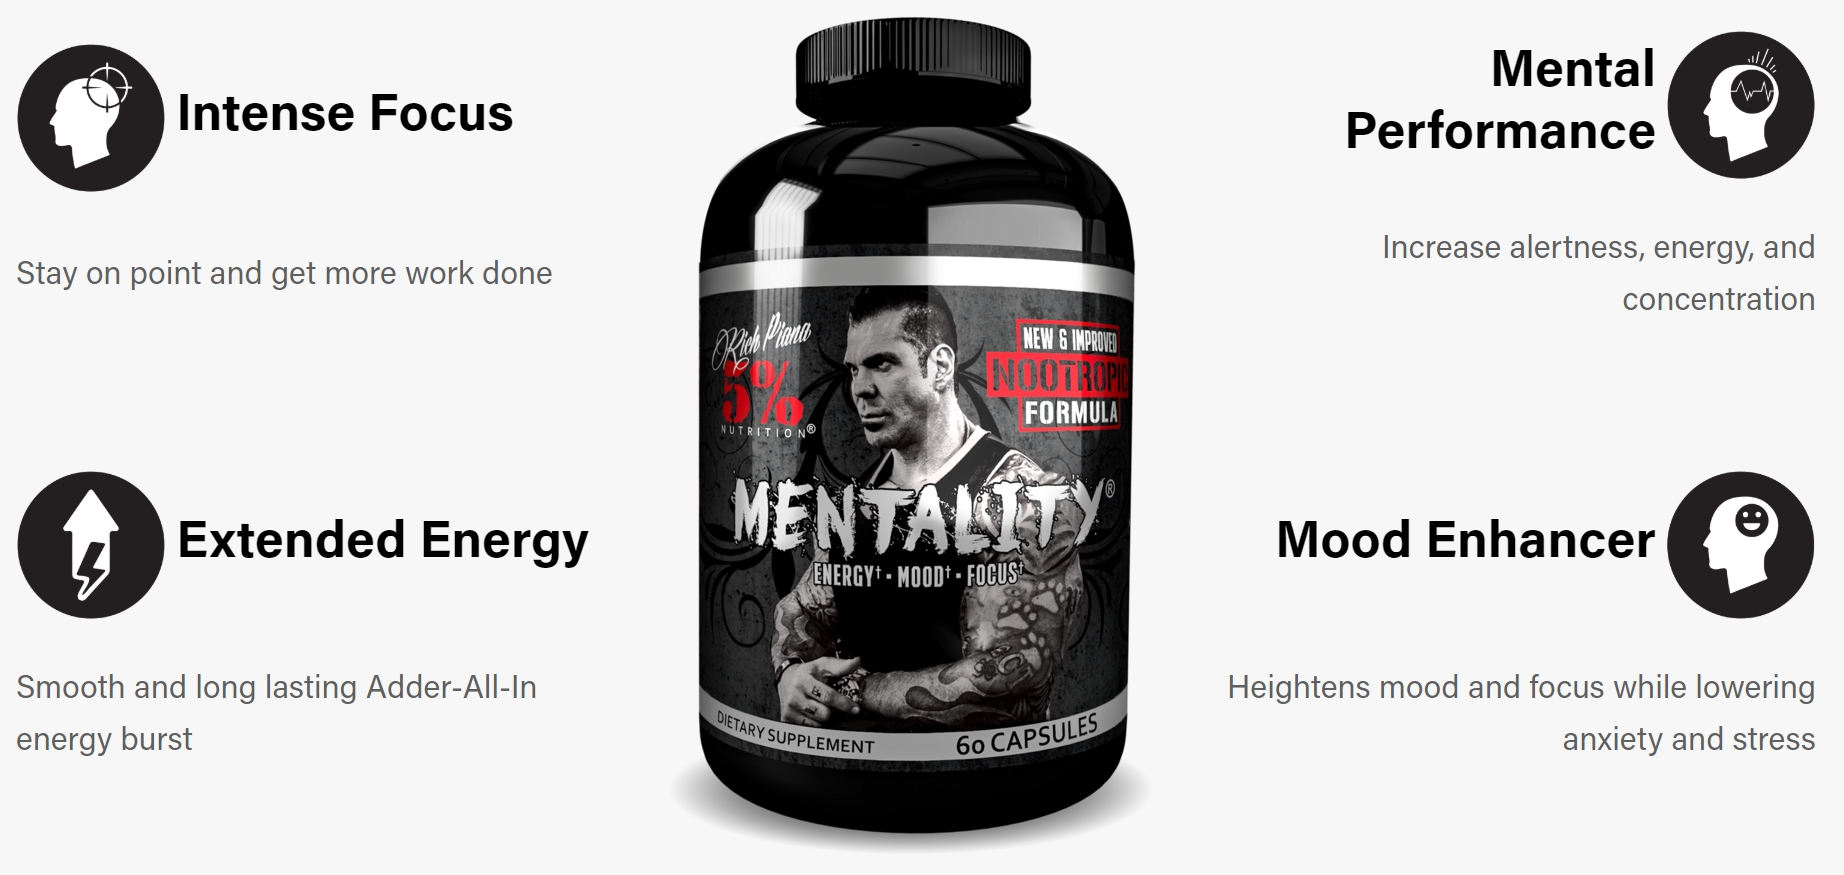 5% NUTRITION Mentality 90 Caps @ iFit